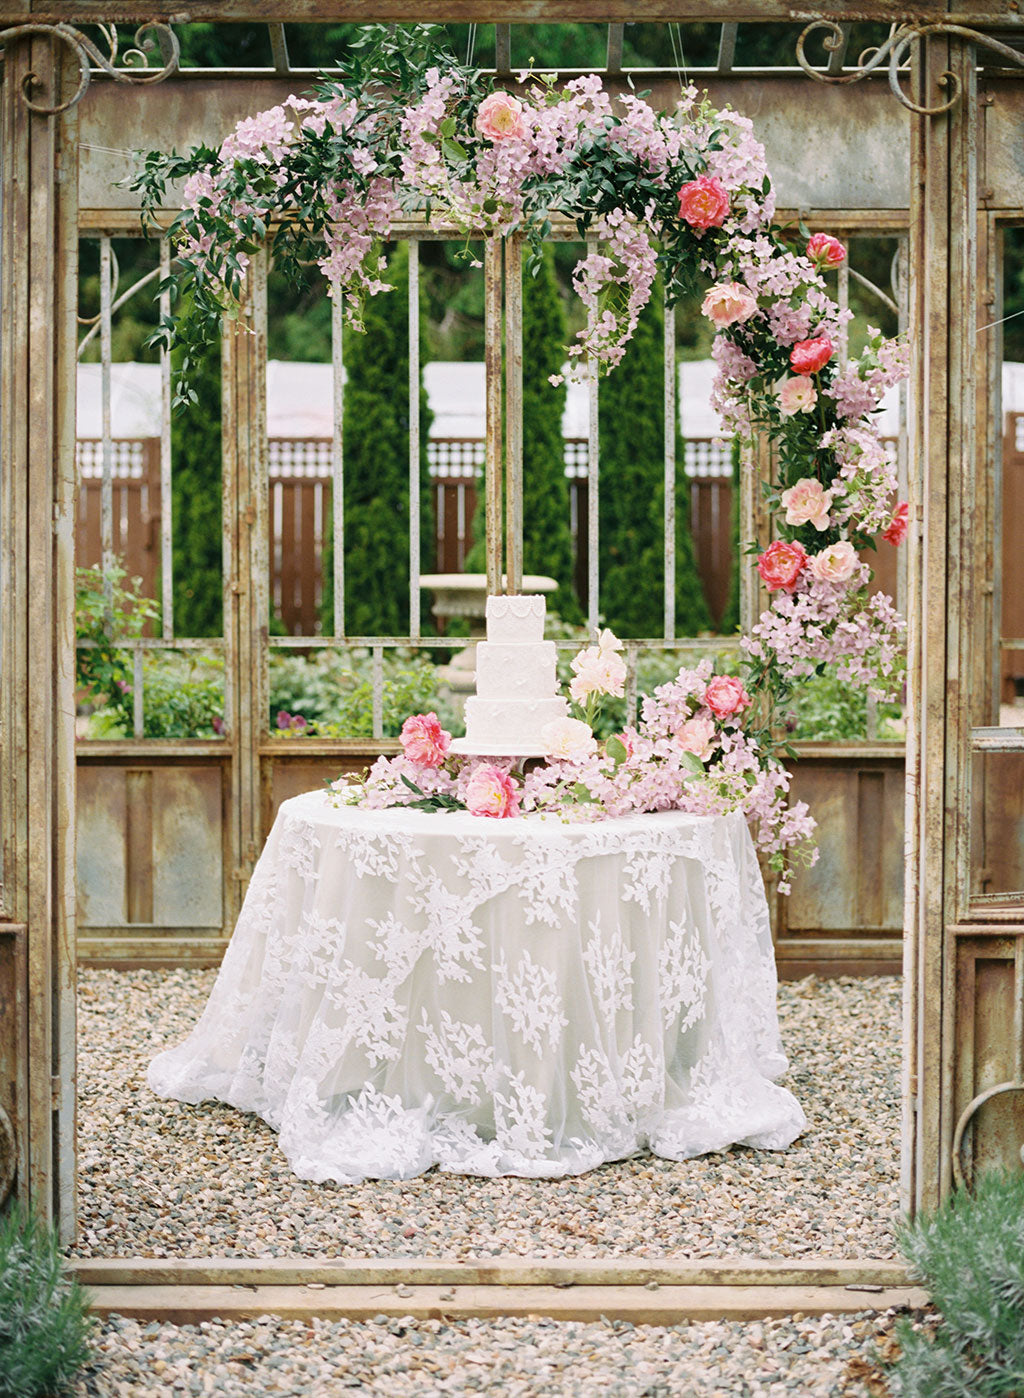 Wedding Cake and Wedding Floral decorations